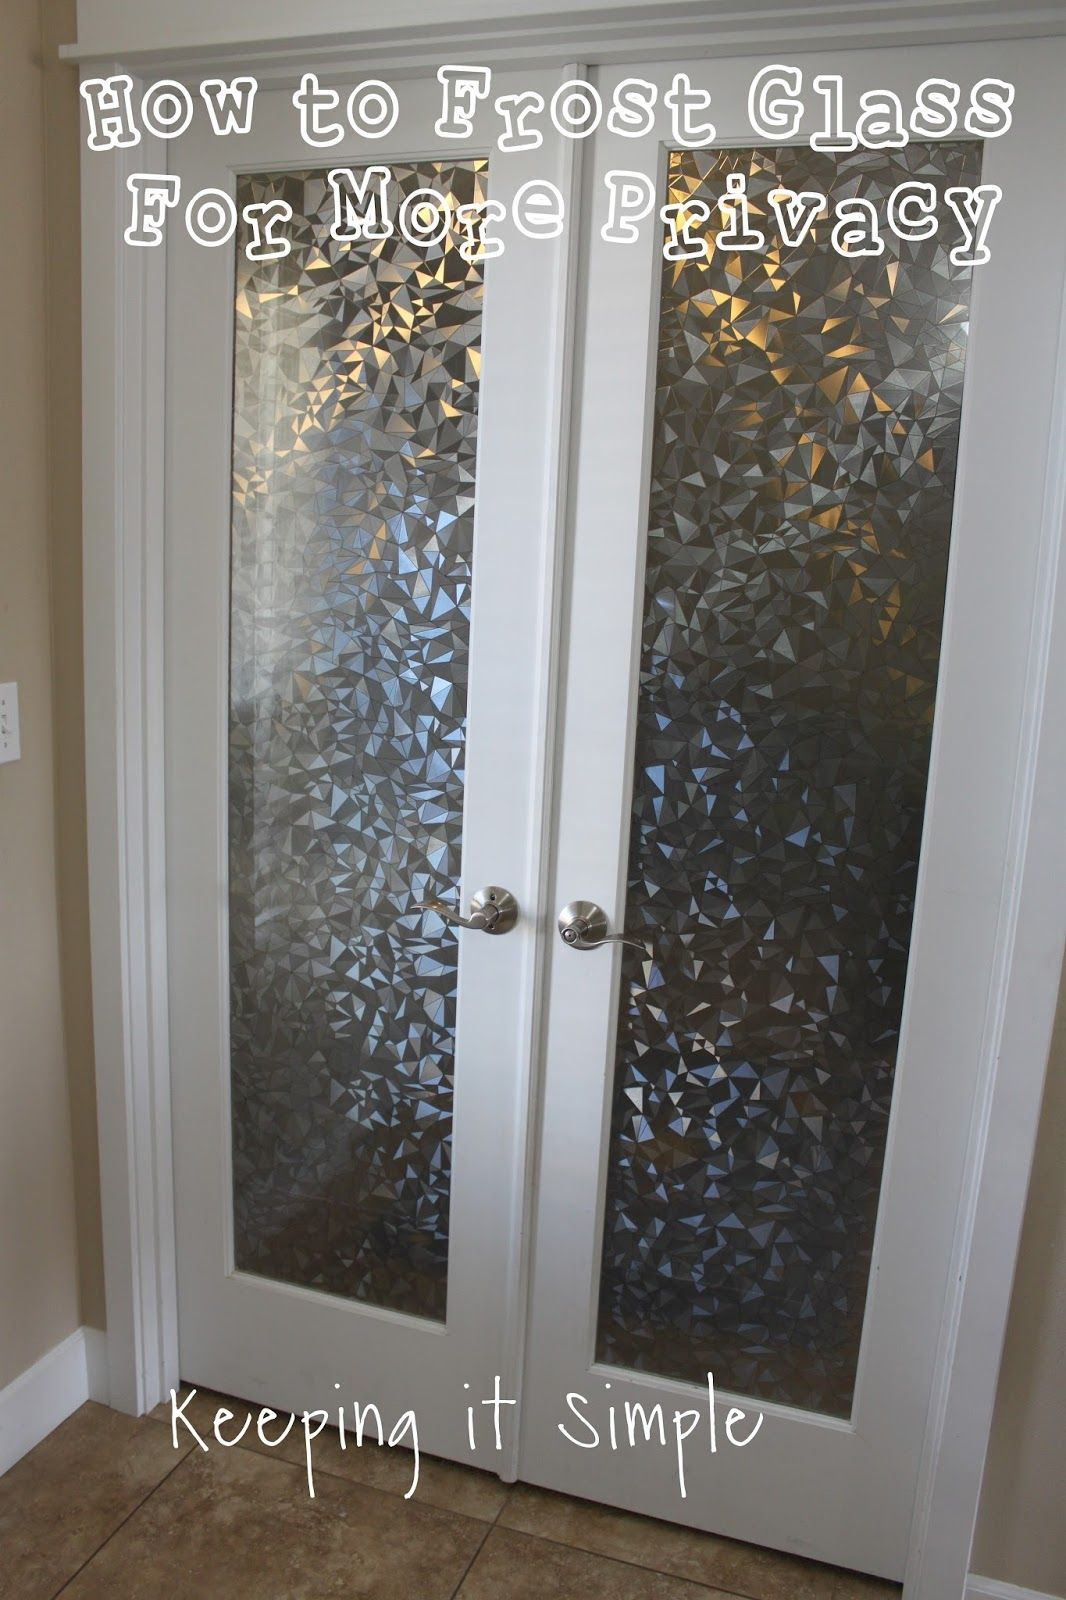 How To Frost Glass With Vinyl For More Privacy Keeping It Simple In 2020 Glasschrankturen Frost Glas Glas Badezimmer